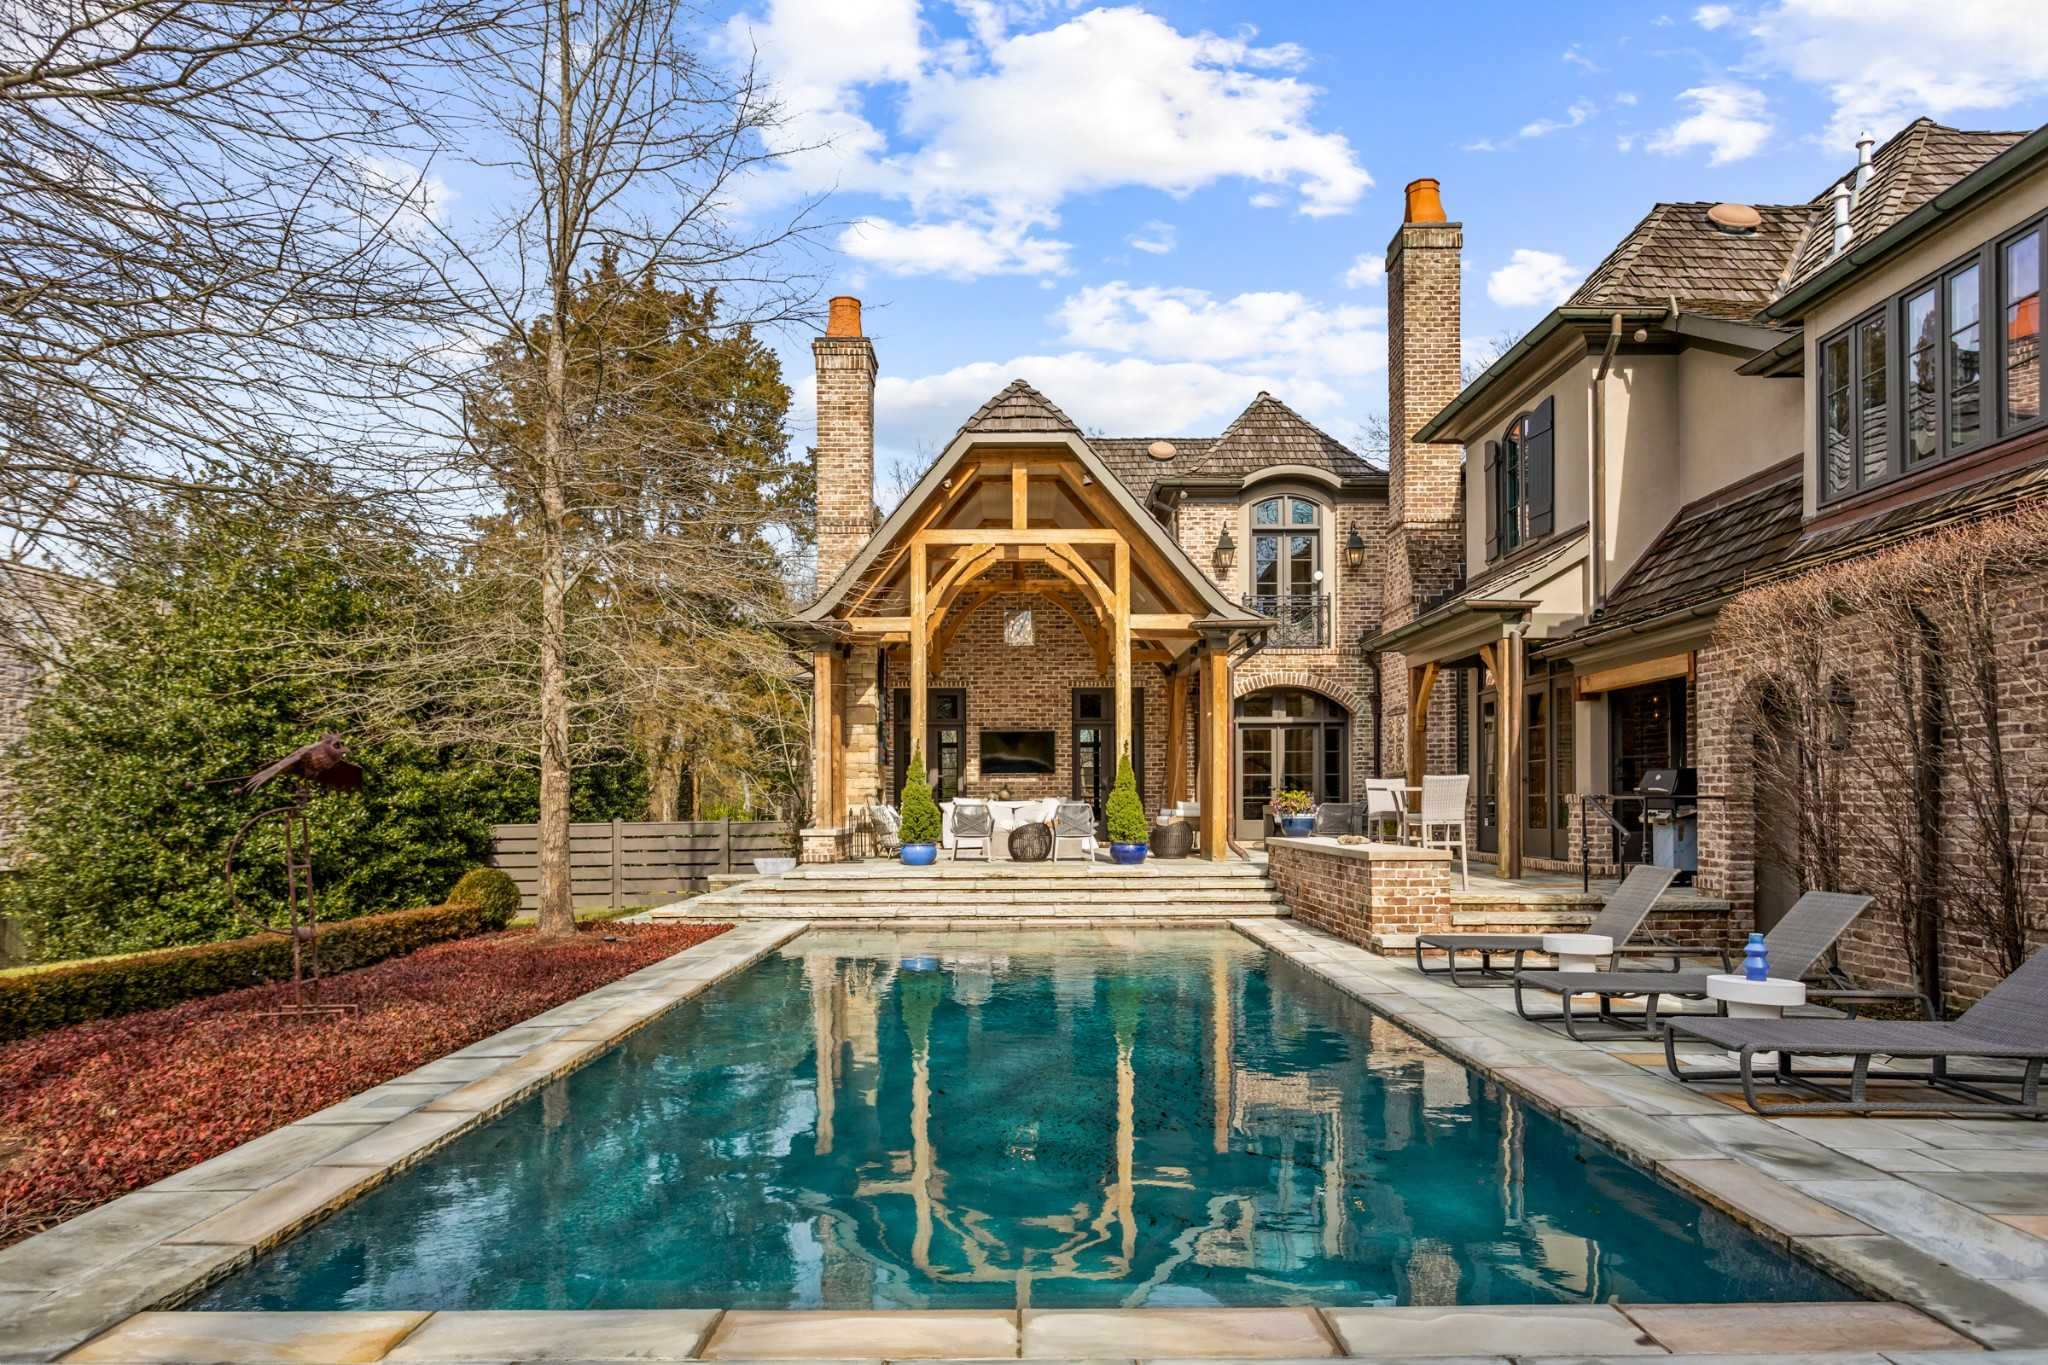 $3,995,000 - 4Br/7Ba -  for Sale in Belle Meade, Nashville